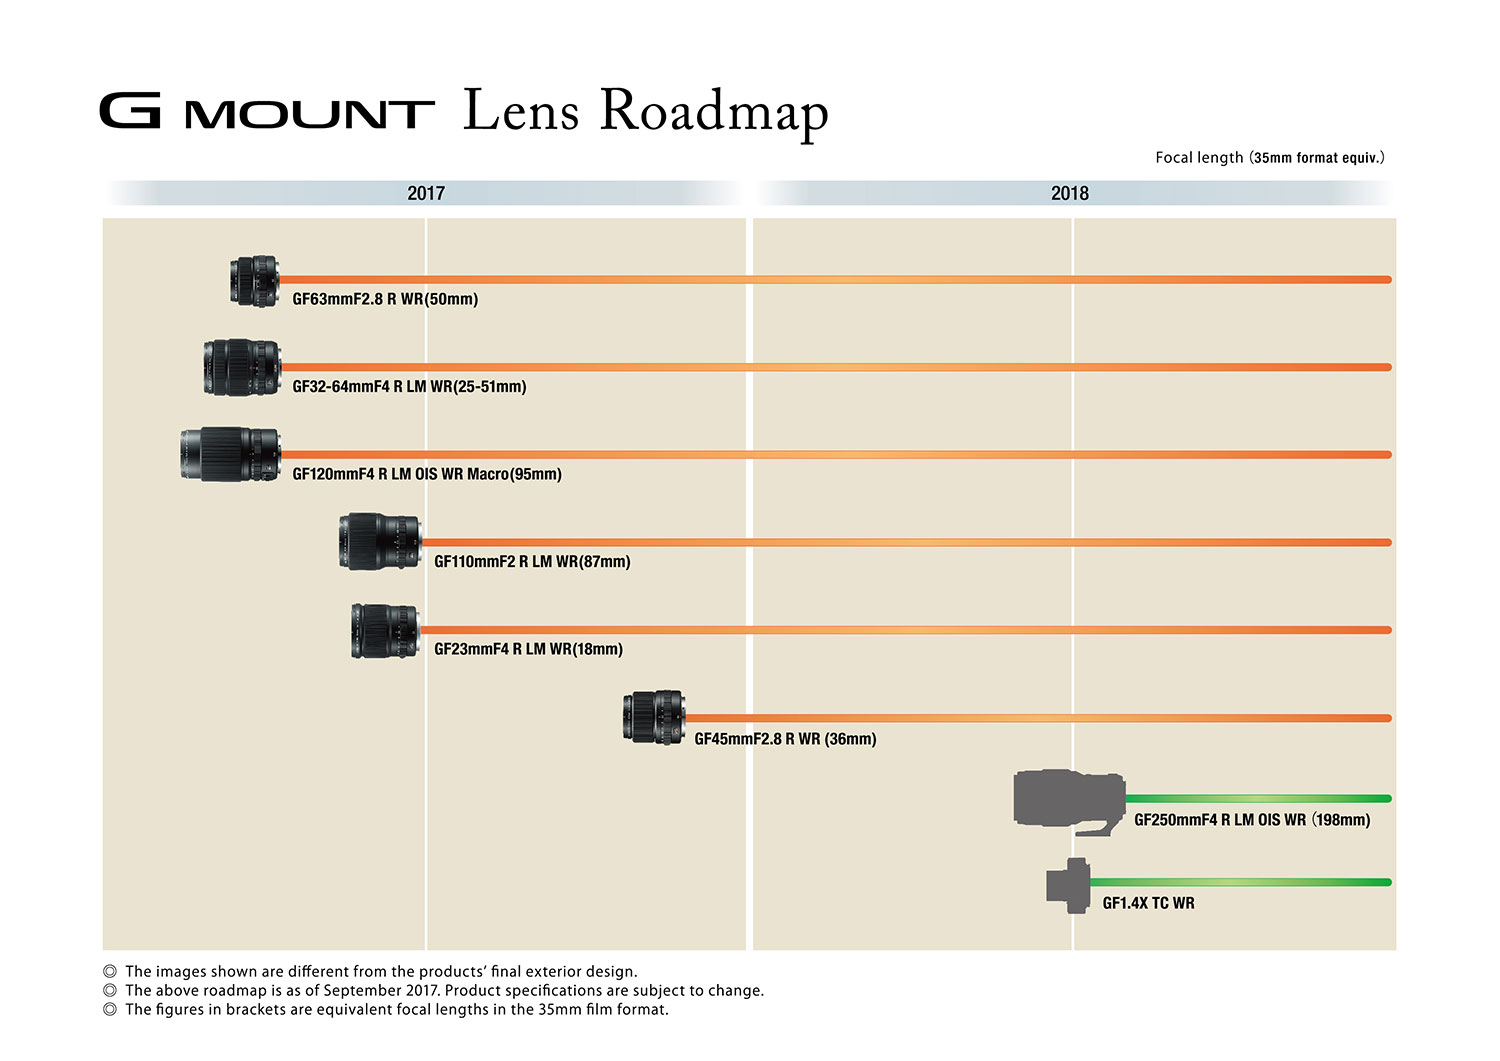 Fujifilm G Mount Roadmap